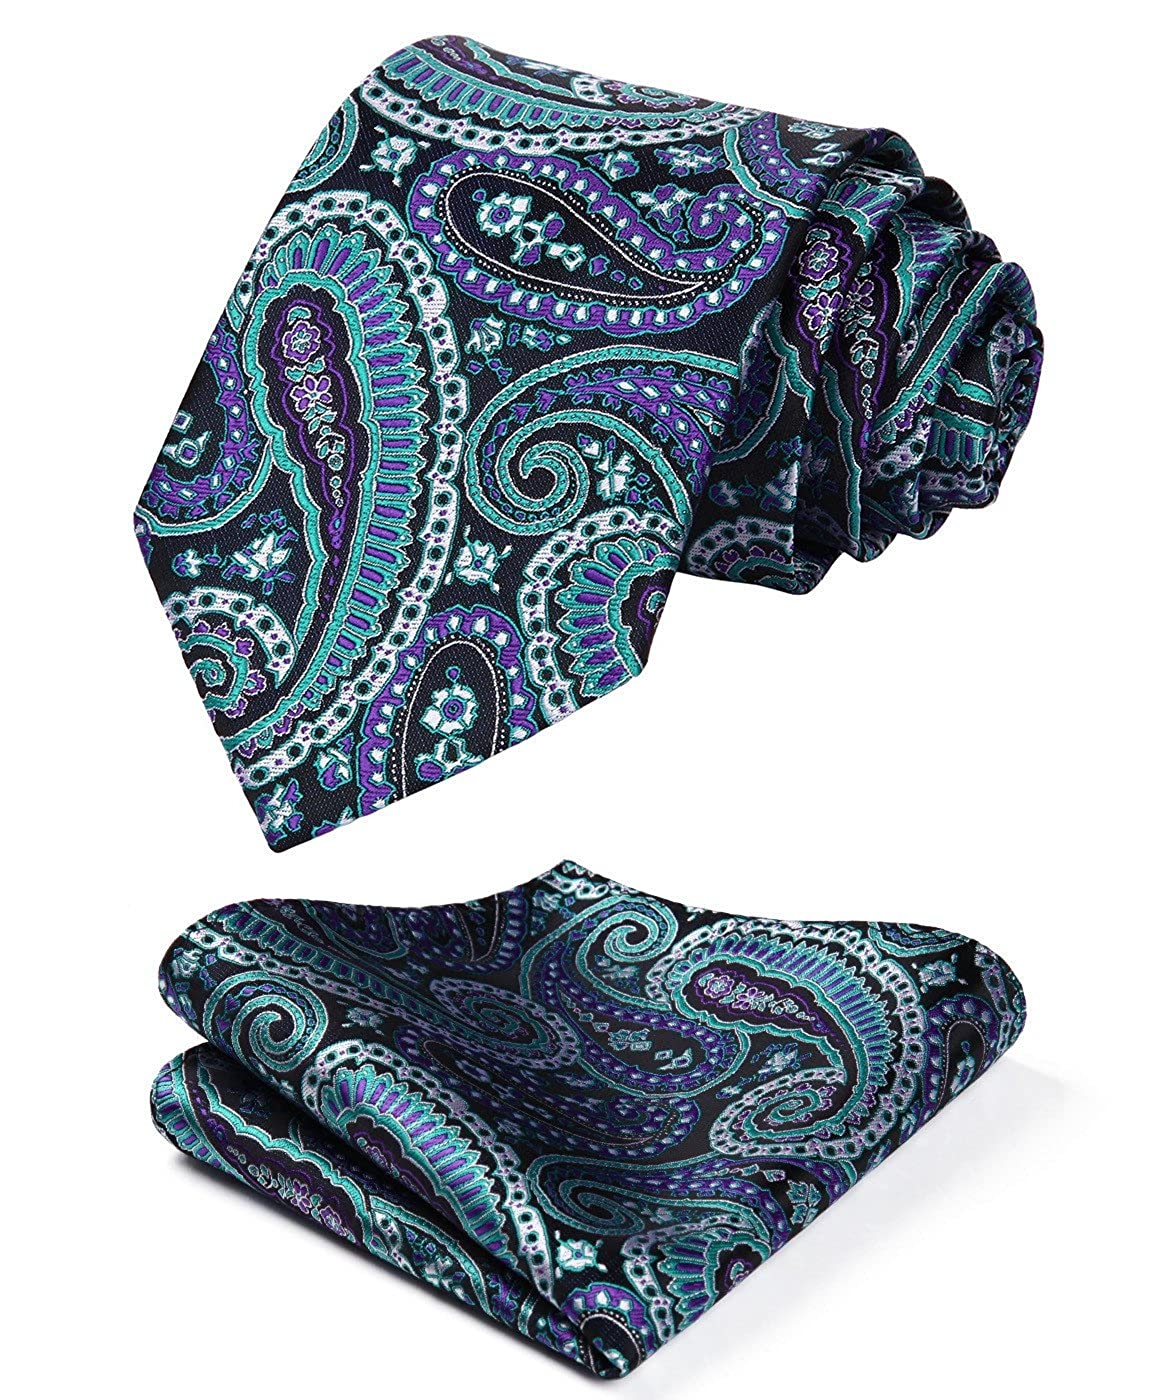 HISDERN Men's Paisley Floral Wedding Silk Neck Tie and Pocket Square Set TP936B8S-4